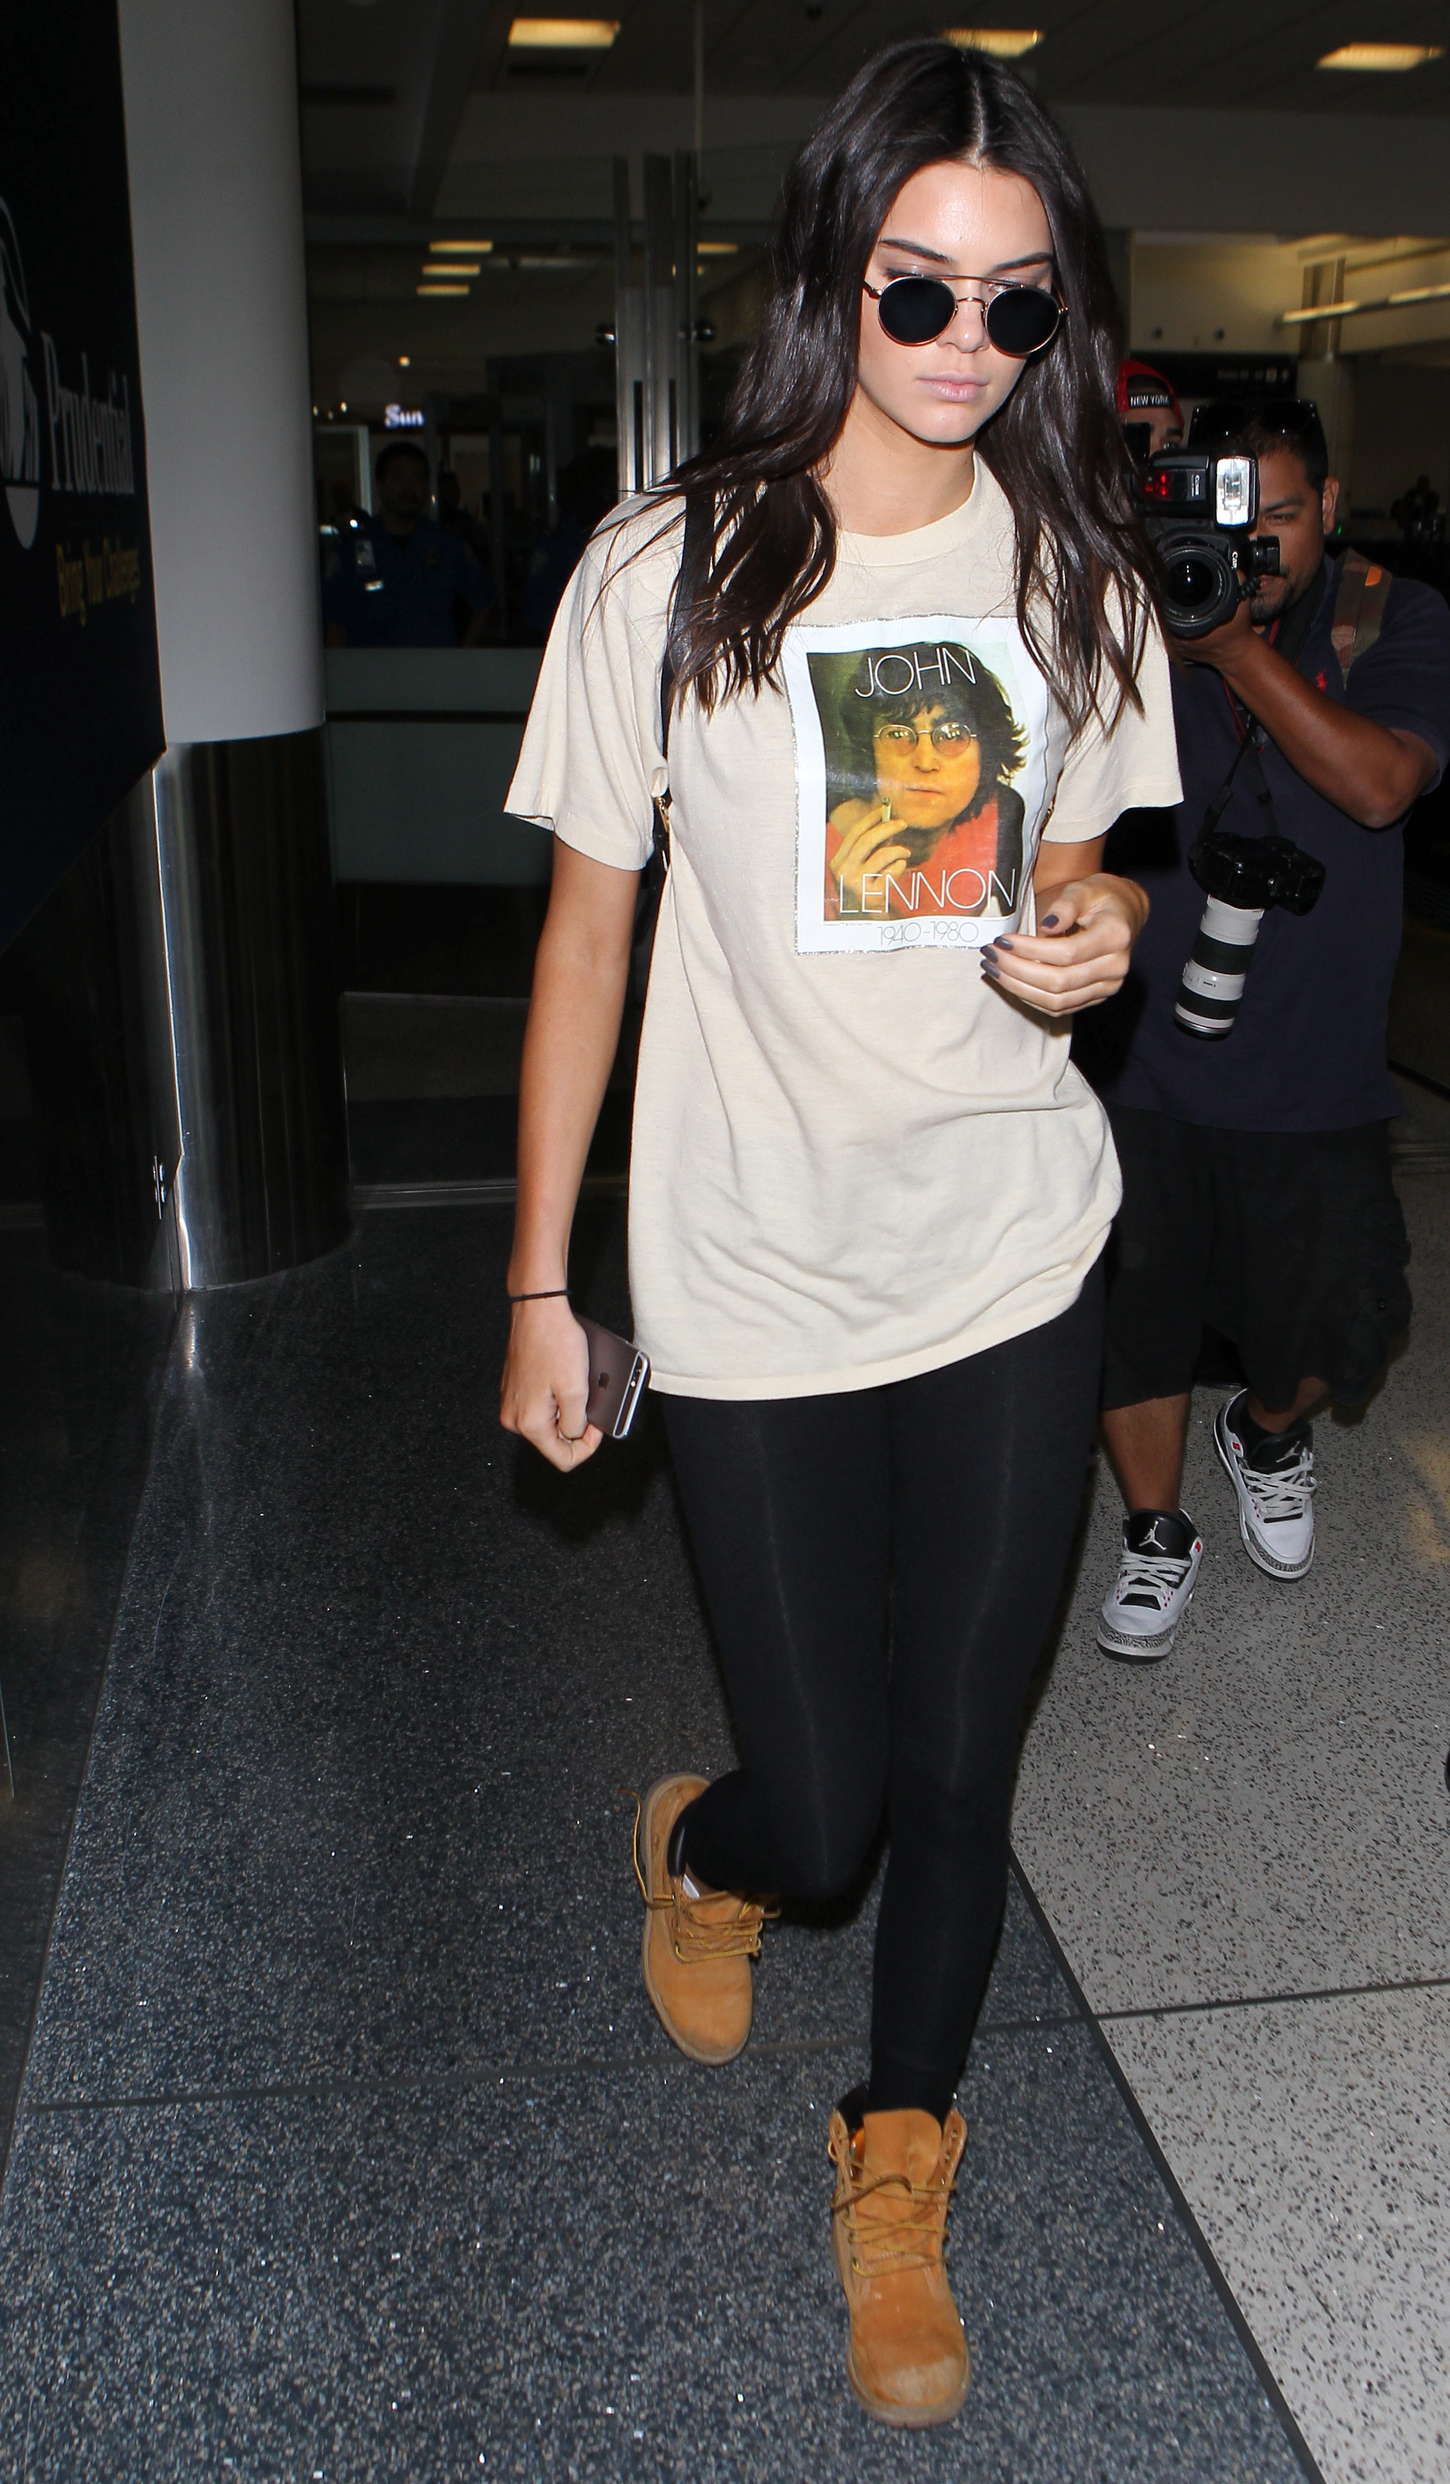 Kendall Jenner 2015 : Kendall Jenner in Tights at LAX -09